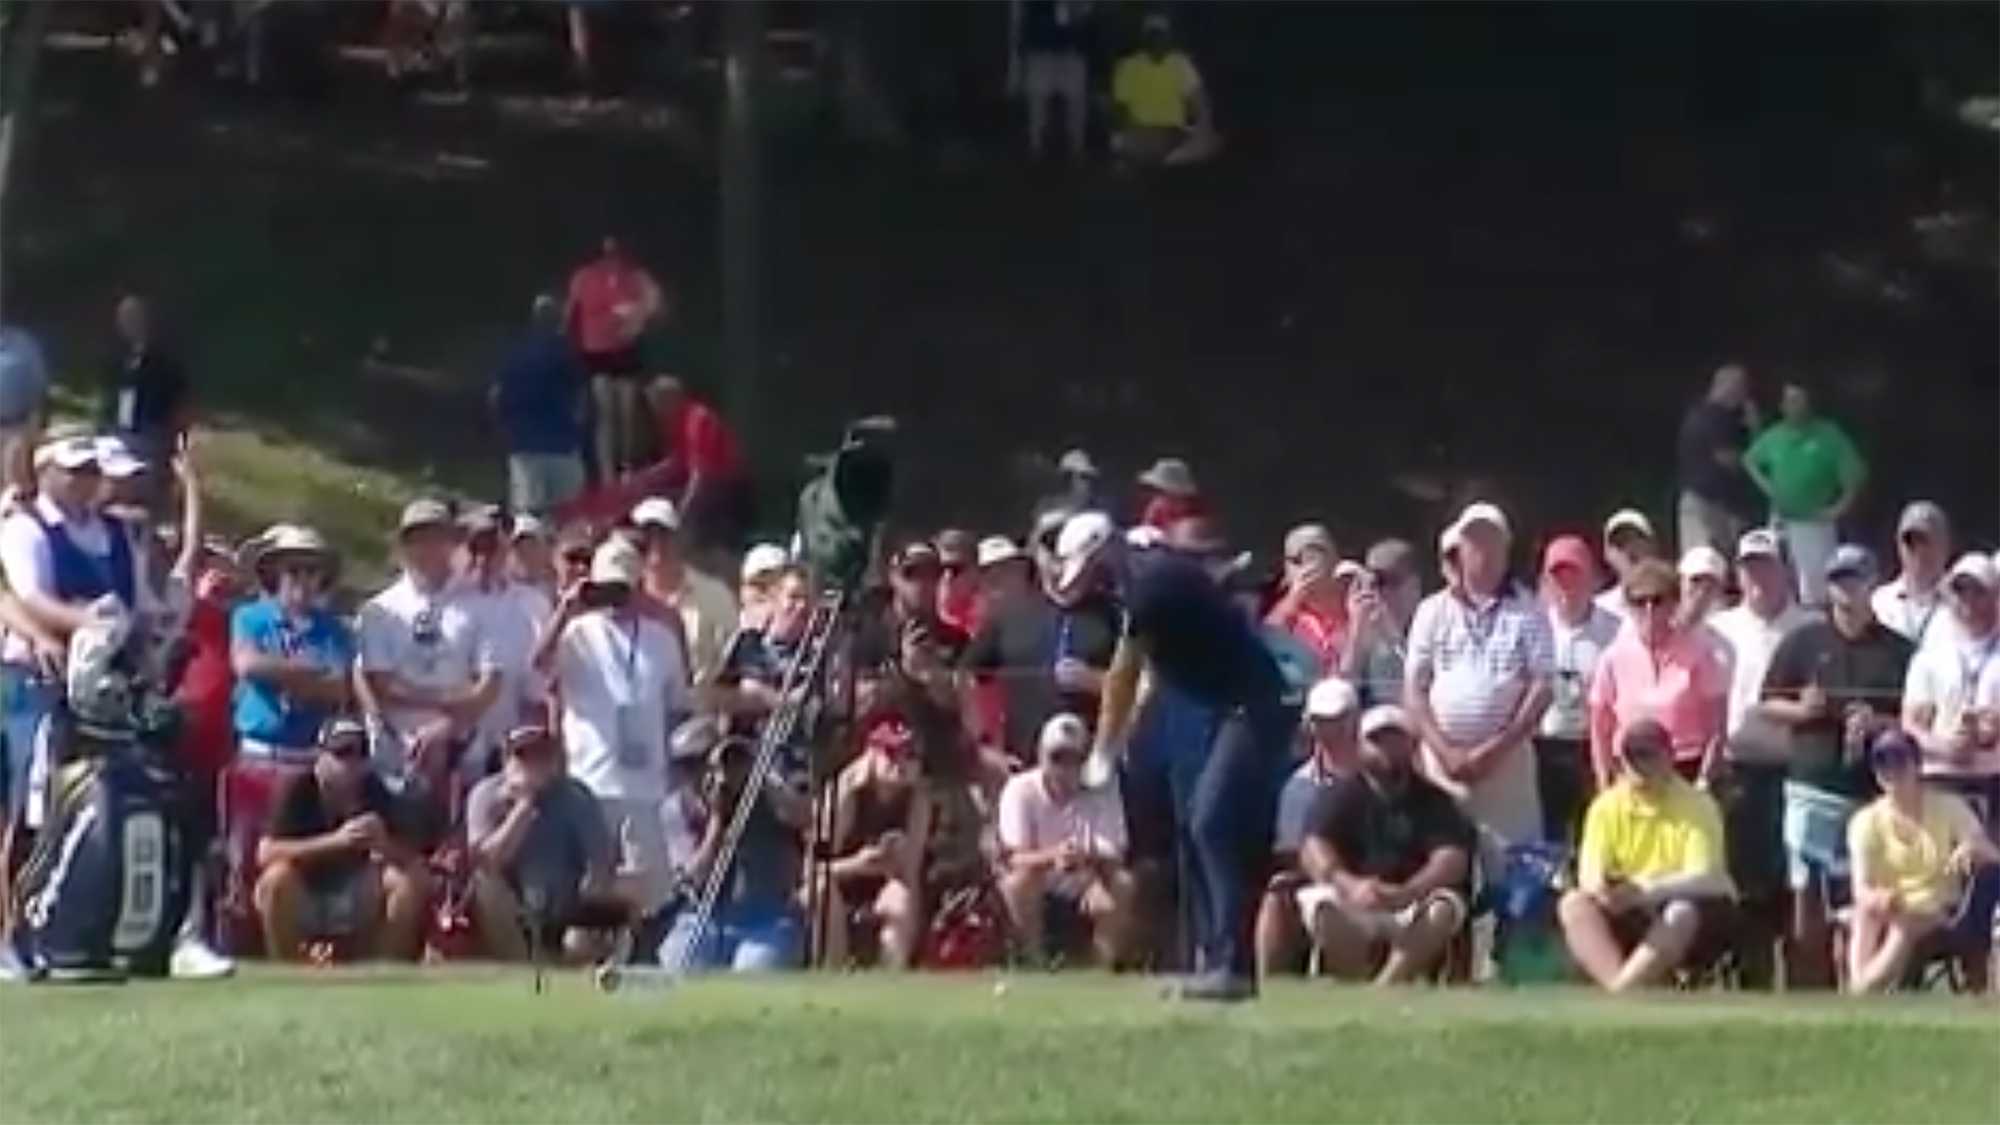 Dustin Johnson PGA Championship hit by ball bellerive